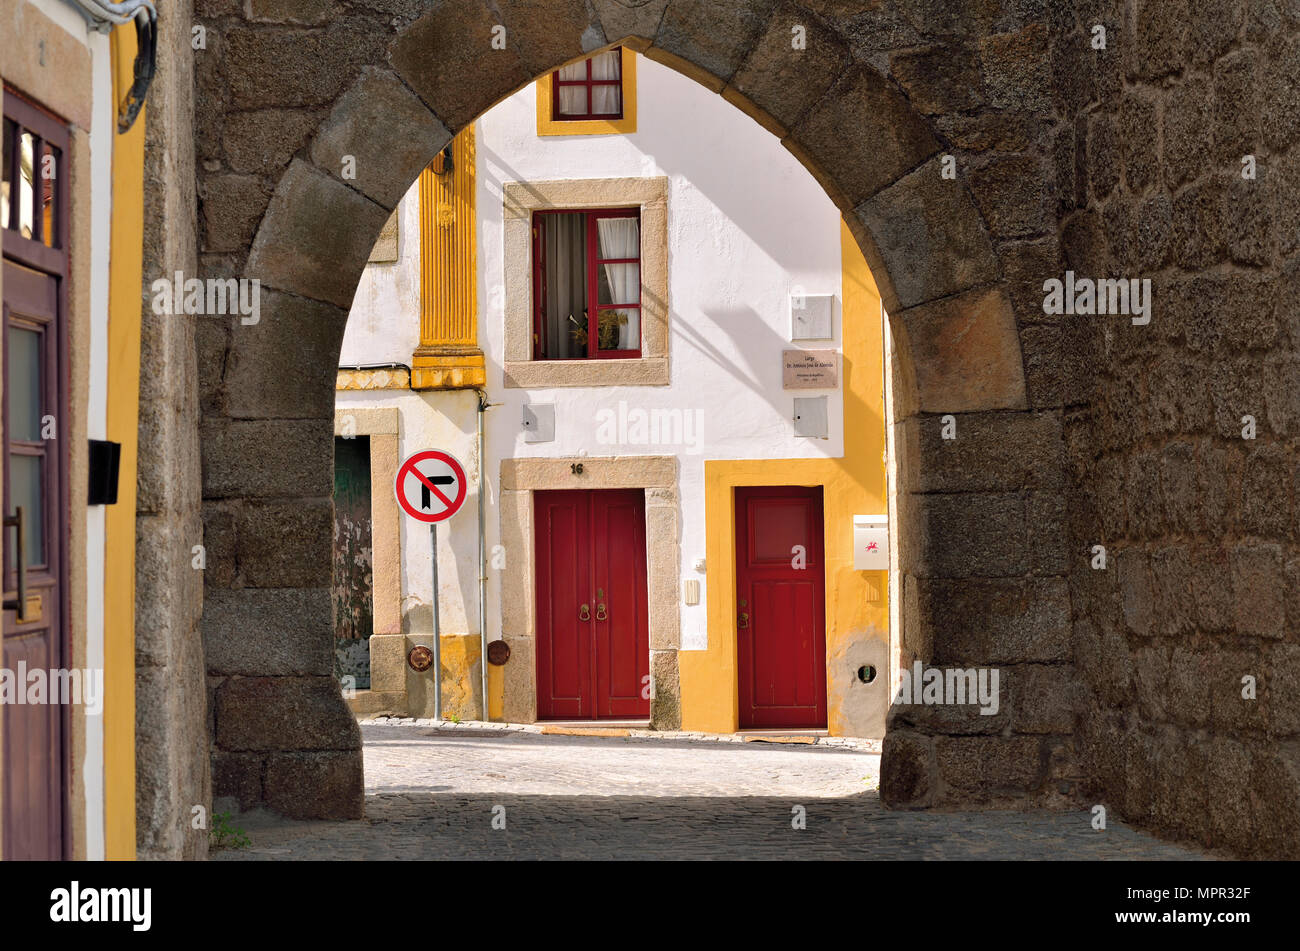 isthrough historic town gate to typical architecture of Alentejo town Nisa - Stock Image